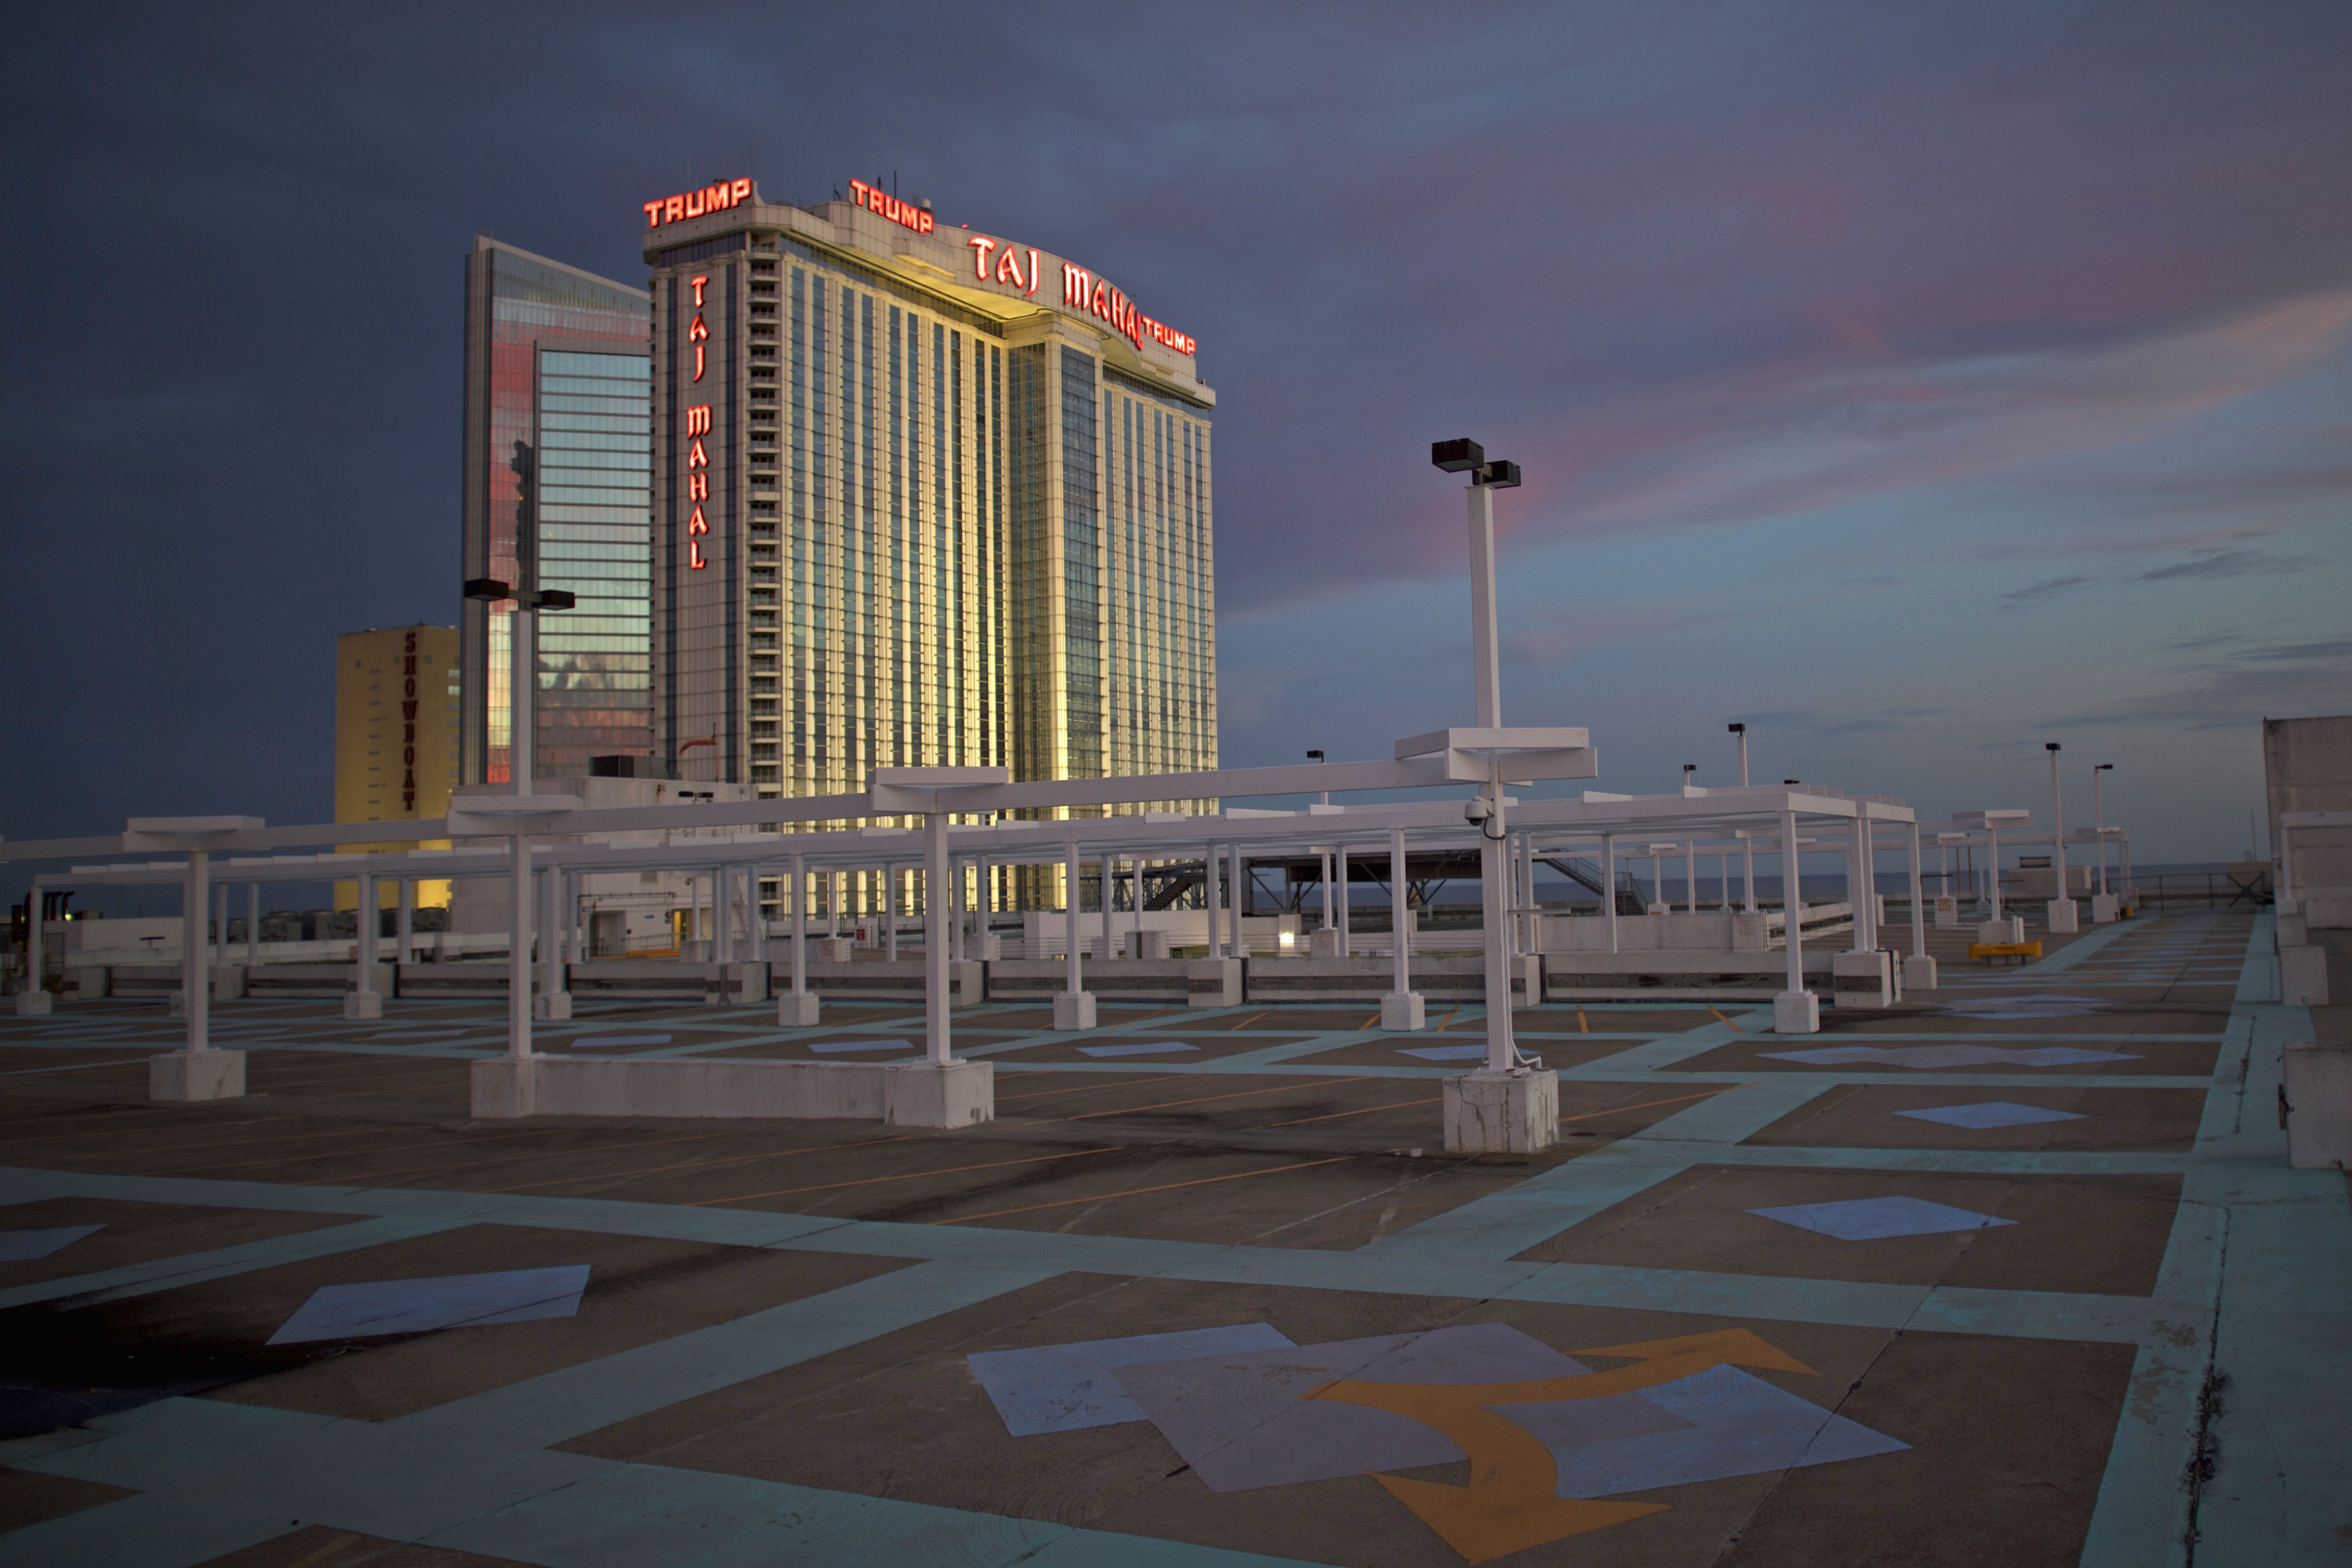 The illuminated Trump Taj Mahal Casino is seen from an empty rooftop parking lot at dusk in Atlantic City, New Jersey